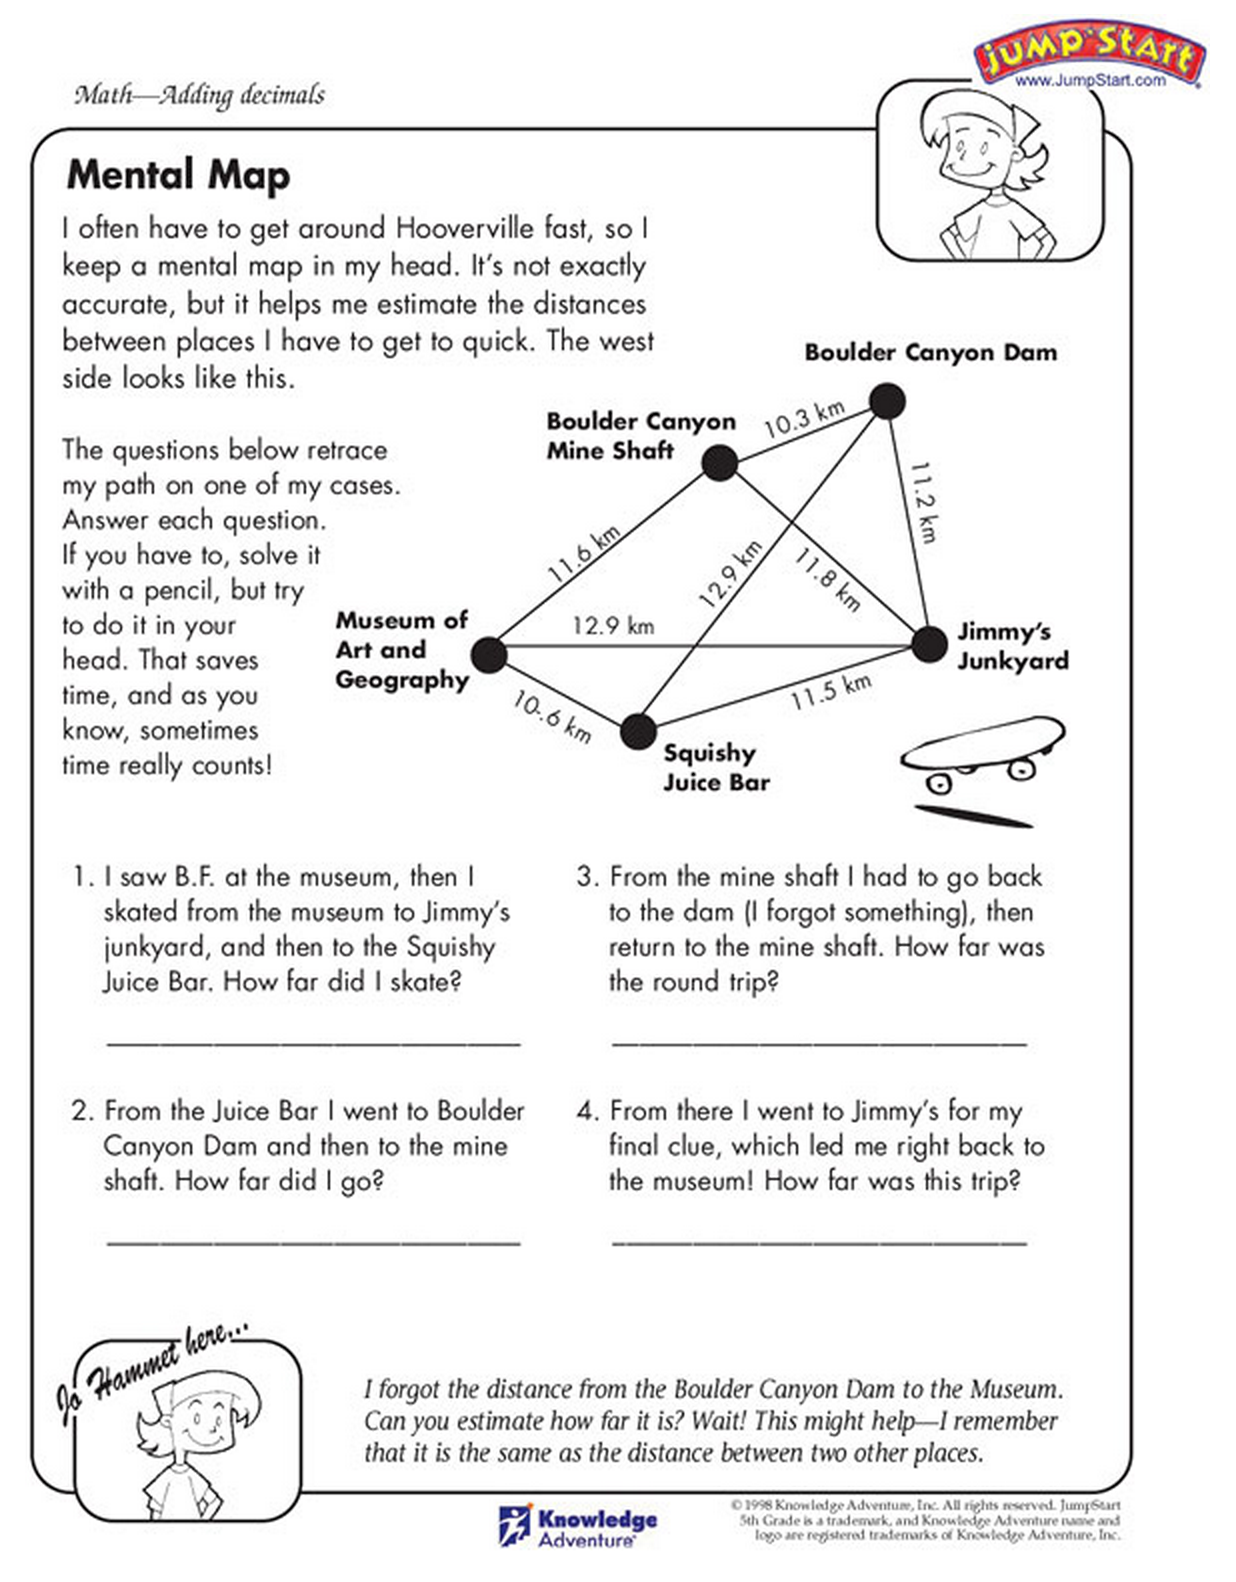 The Decimal Math Practice Sheet Read The Story To Solve The Math Problems Mental Maths Worksheets Math Worksheets Mental Math [ 1582 x 1236 Pixel ]